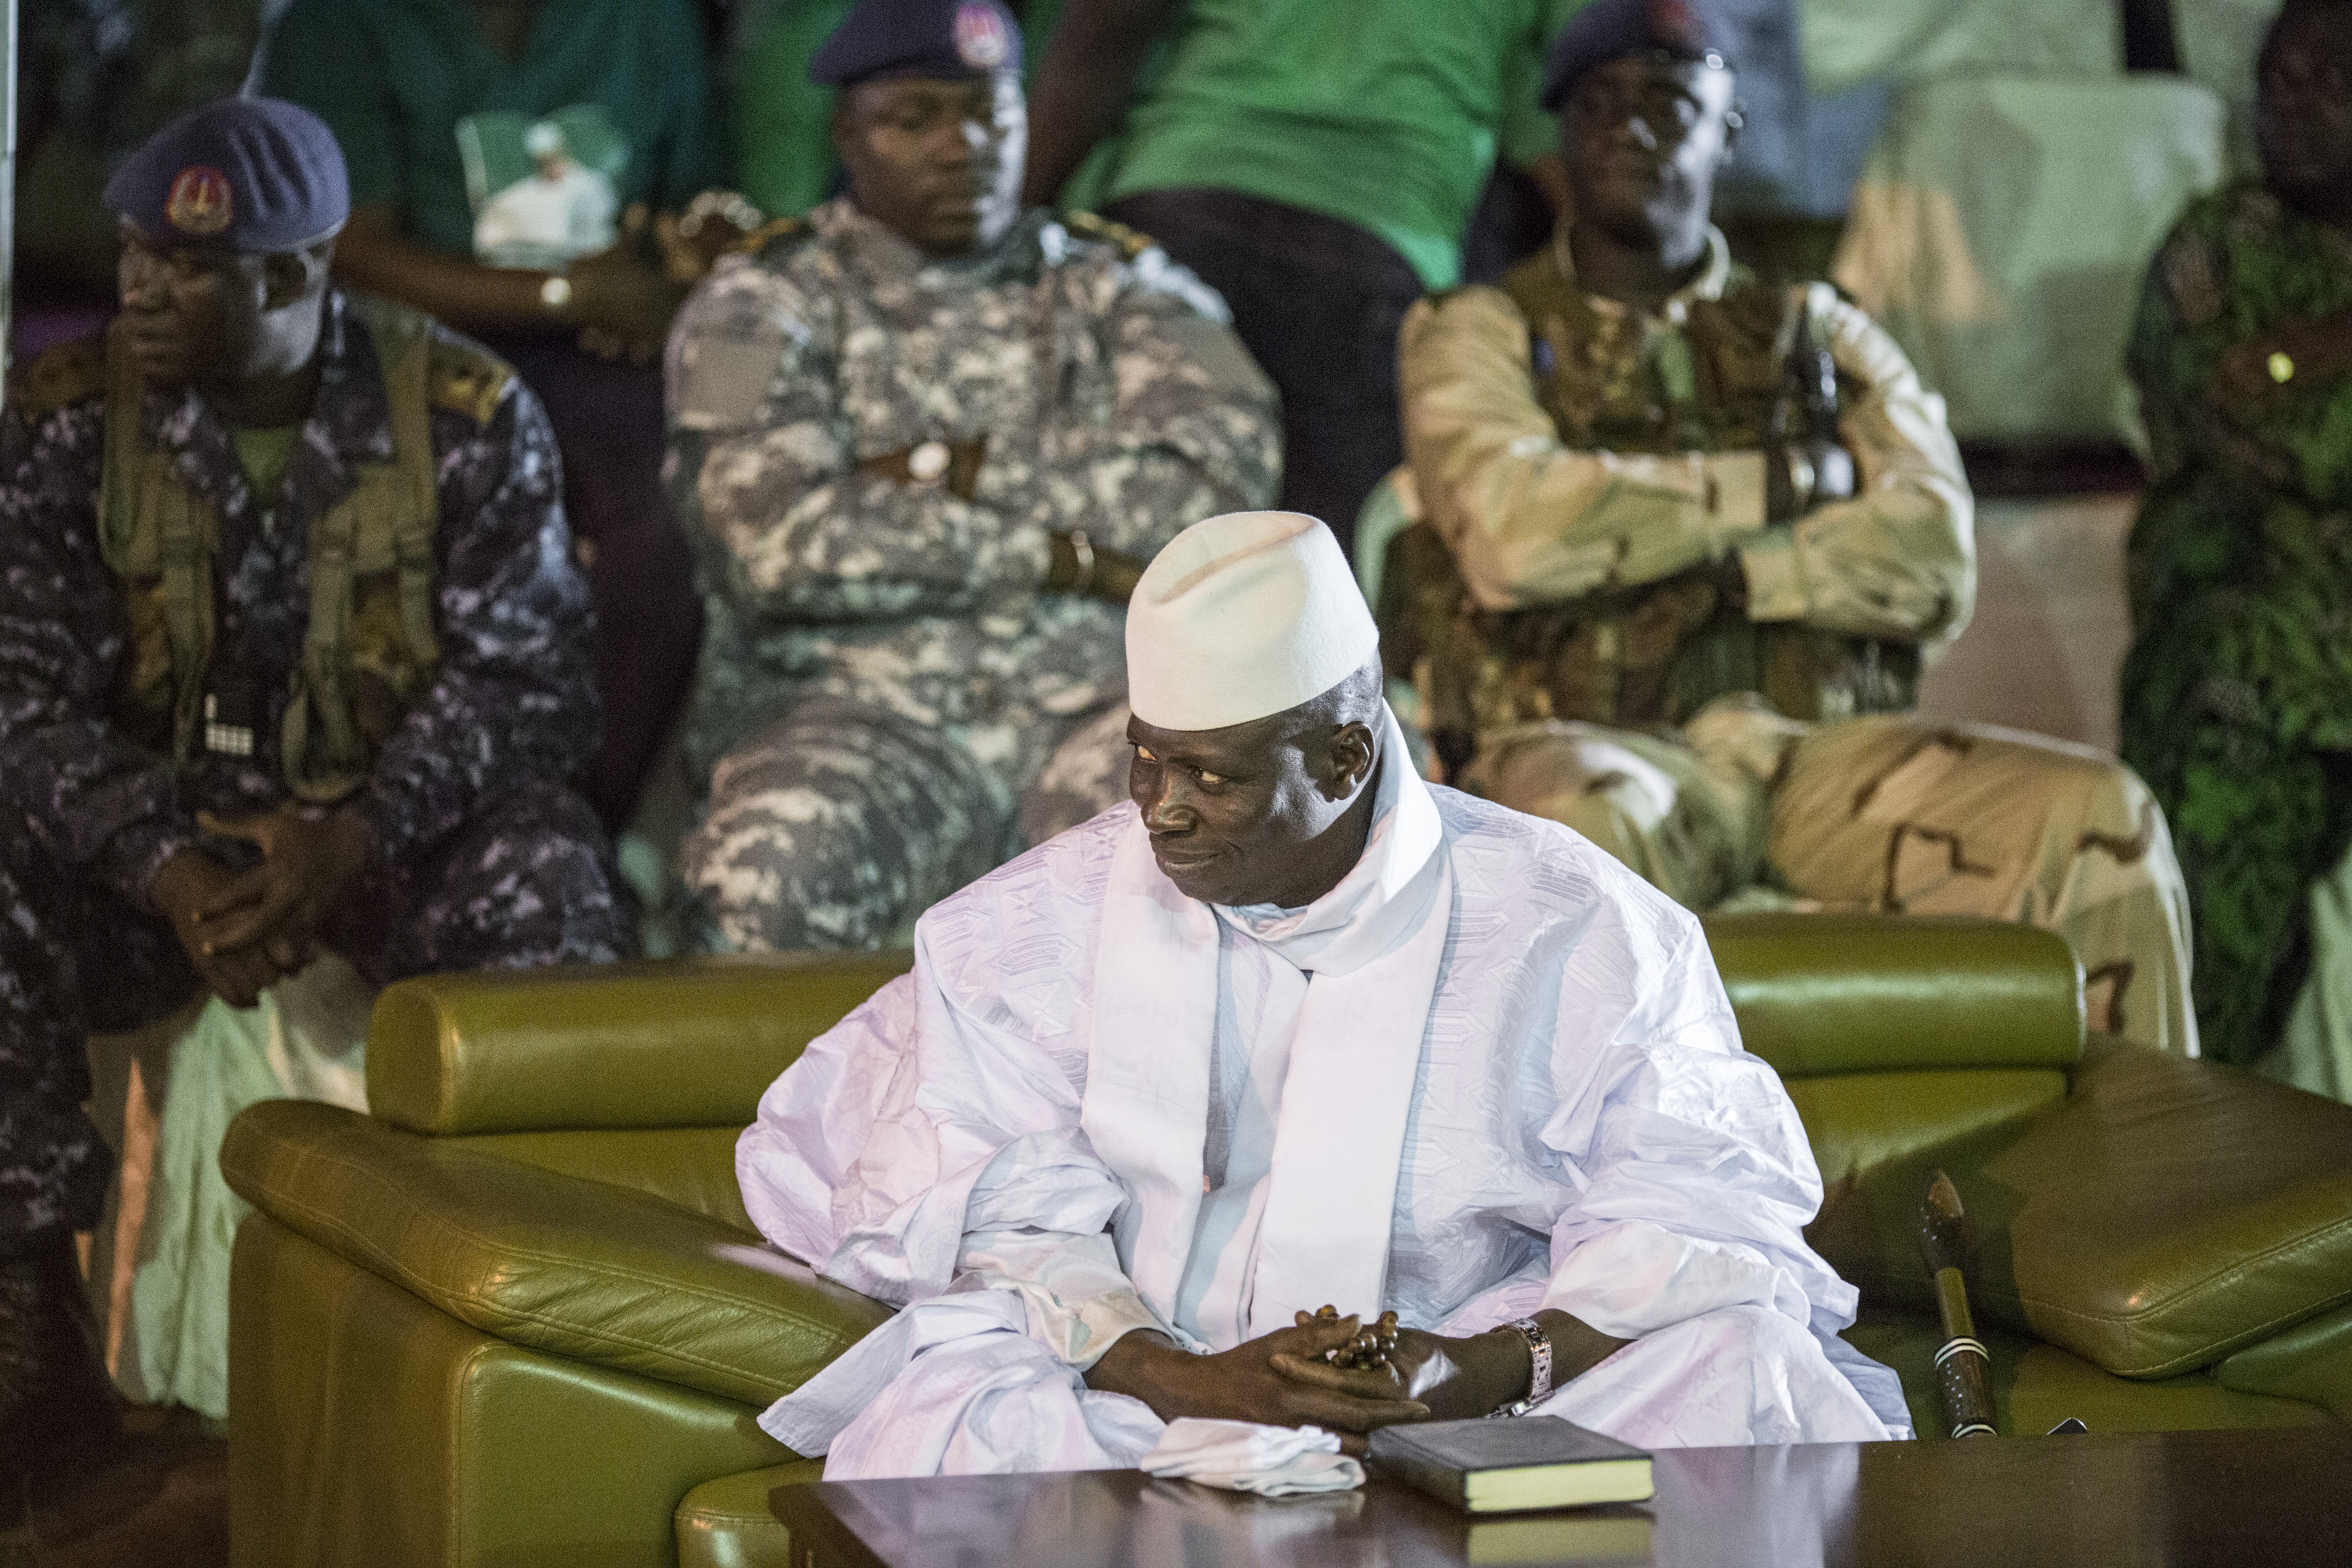 Incumbent Gambian President Yahya Jammeh looks on in Banjul on November 29, 2016, during the closing rally of the electoral campaign of the Alliance for Patriotic Reorientation and Construction (APRC).